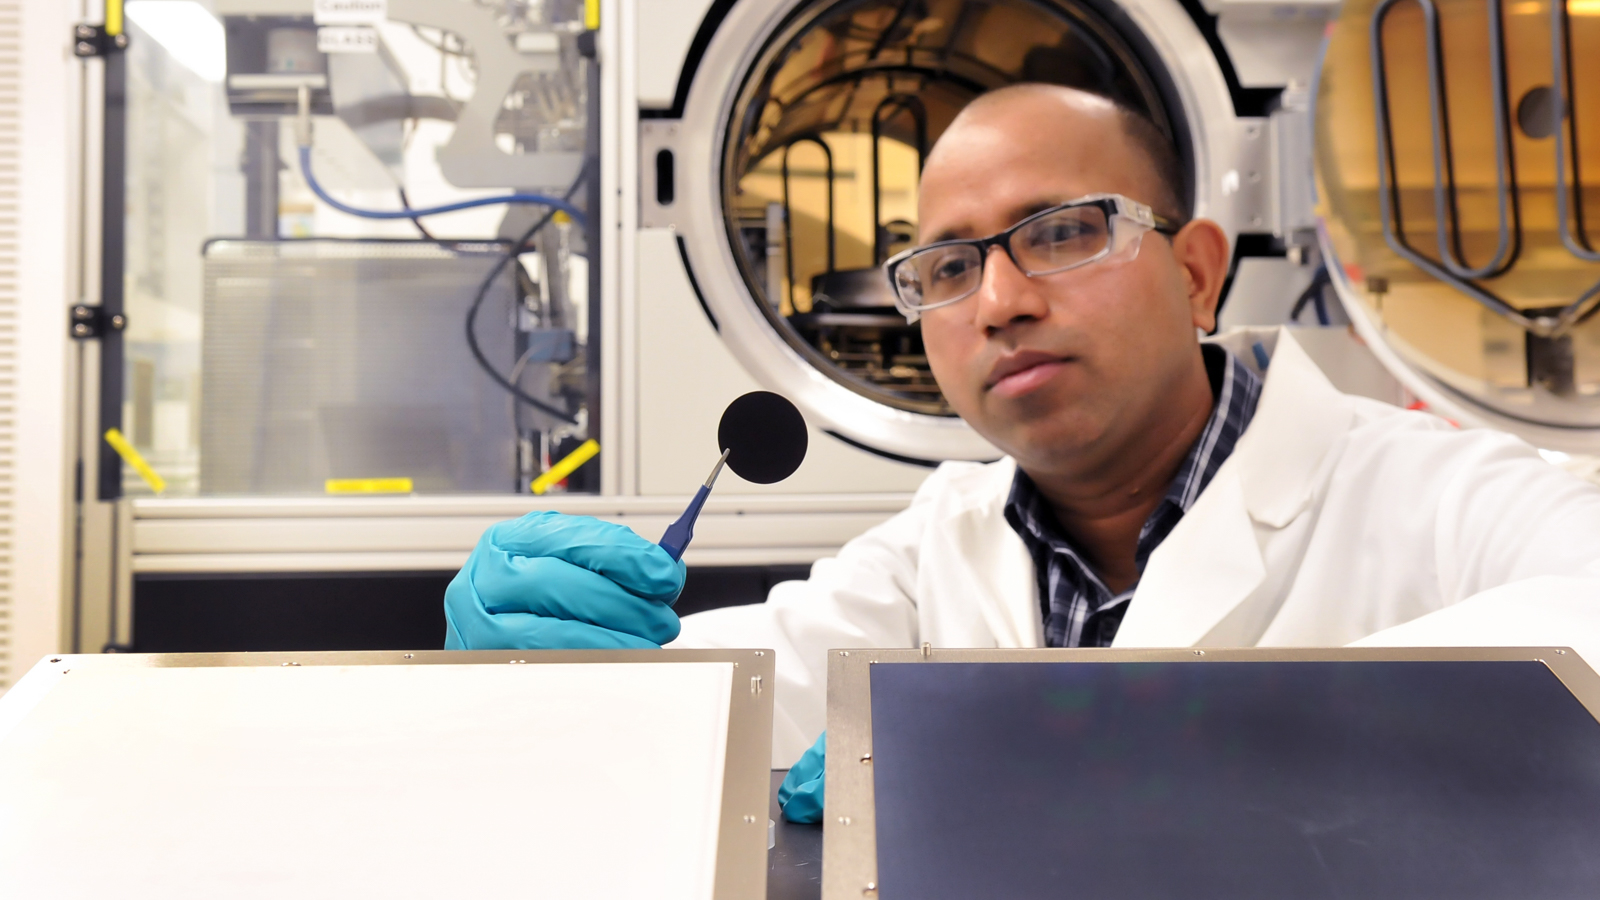 Argonne materials scientist Anil Mane examines a microchannel plate.